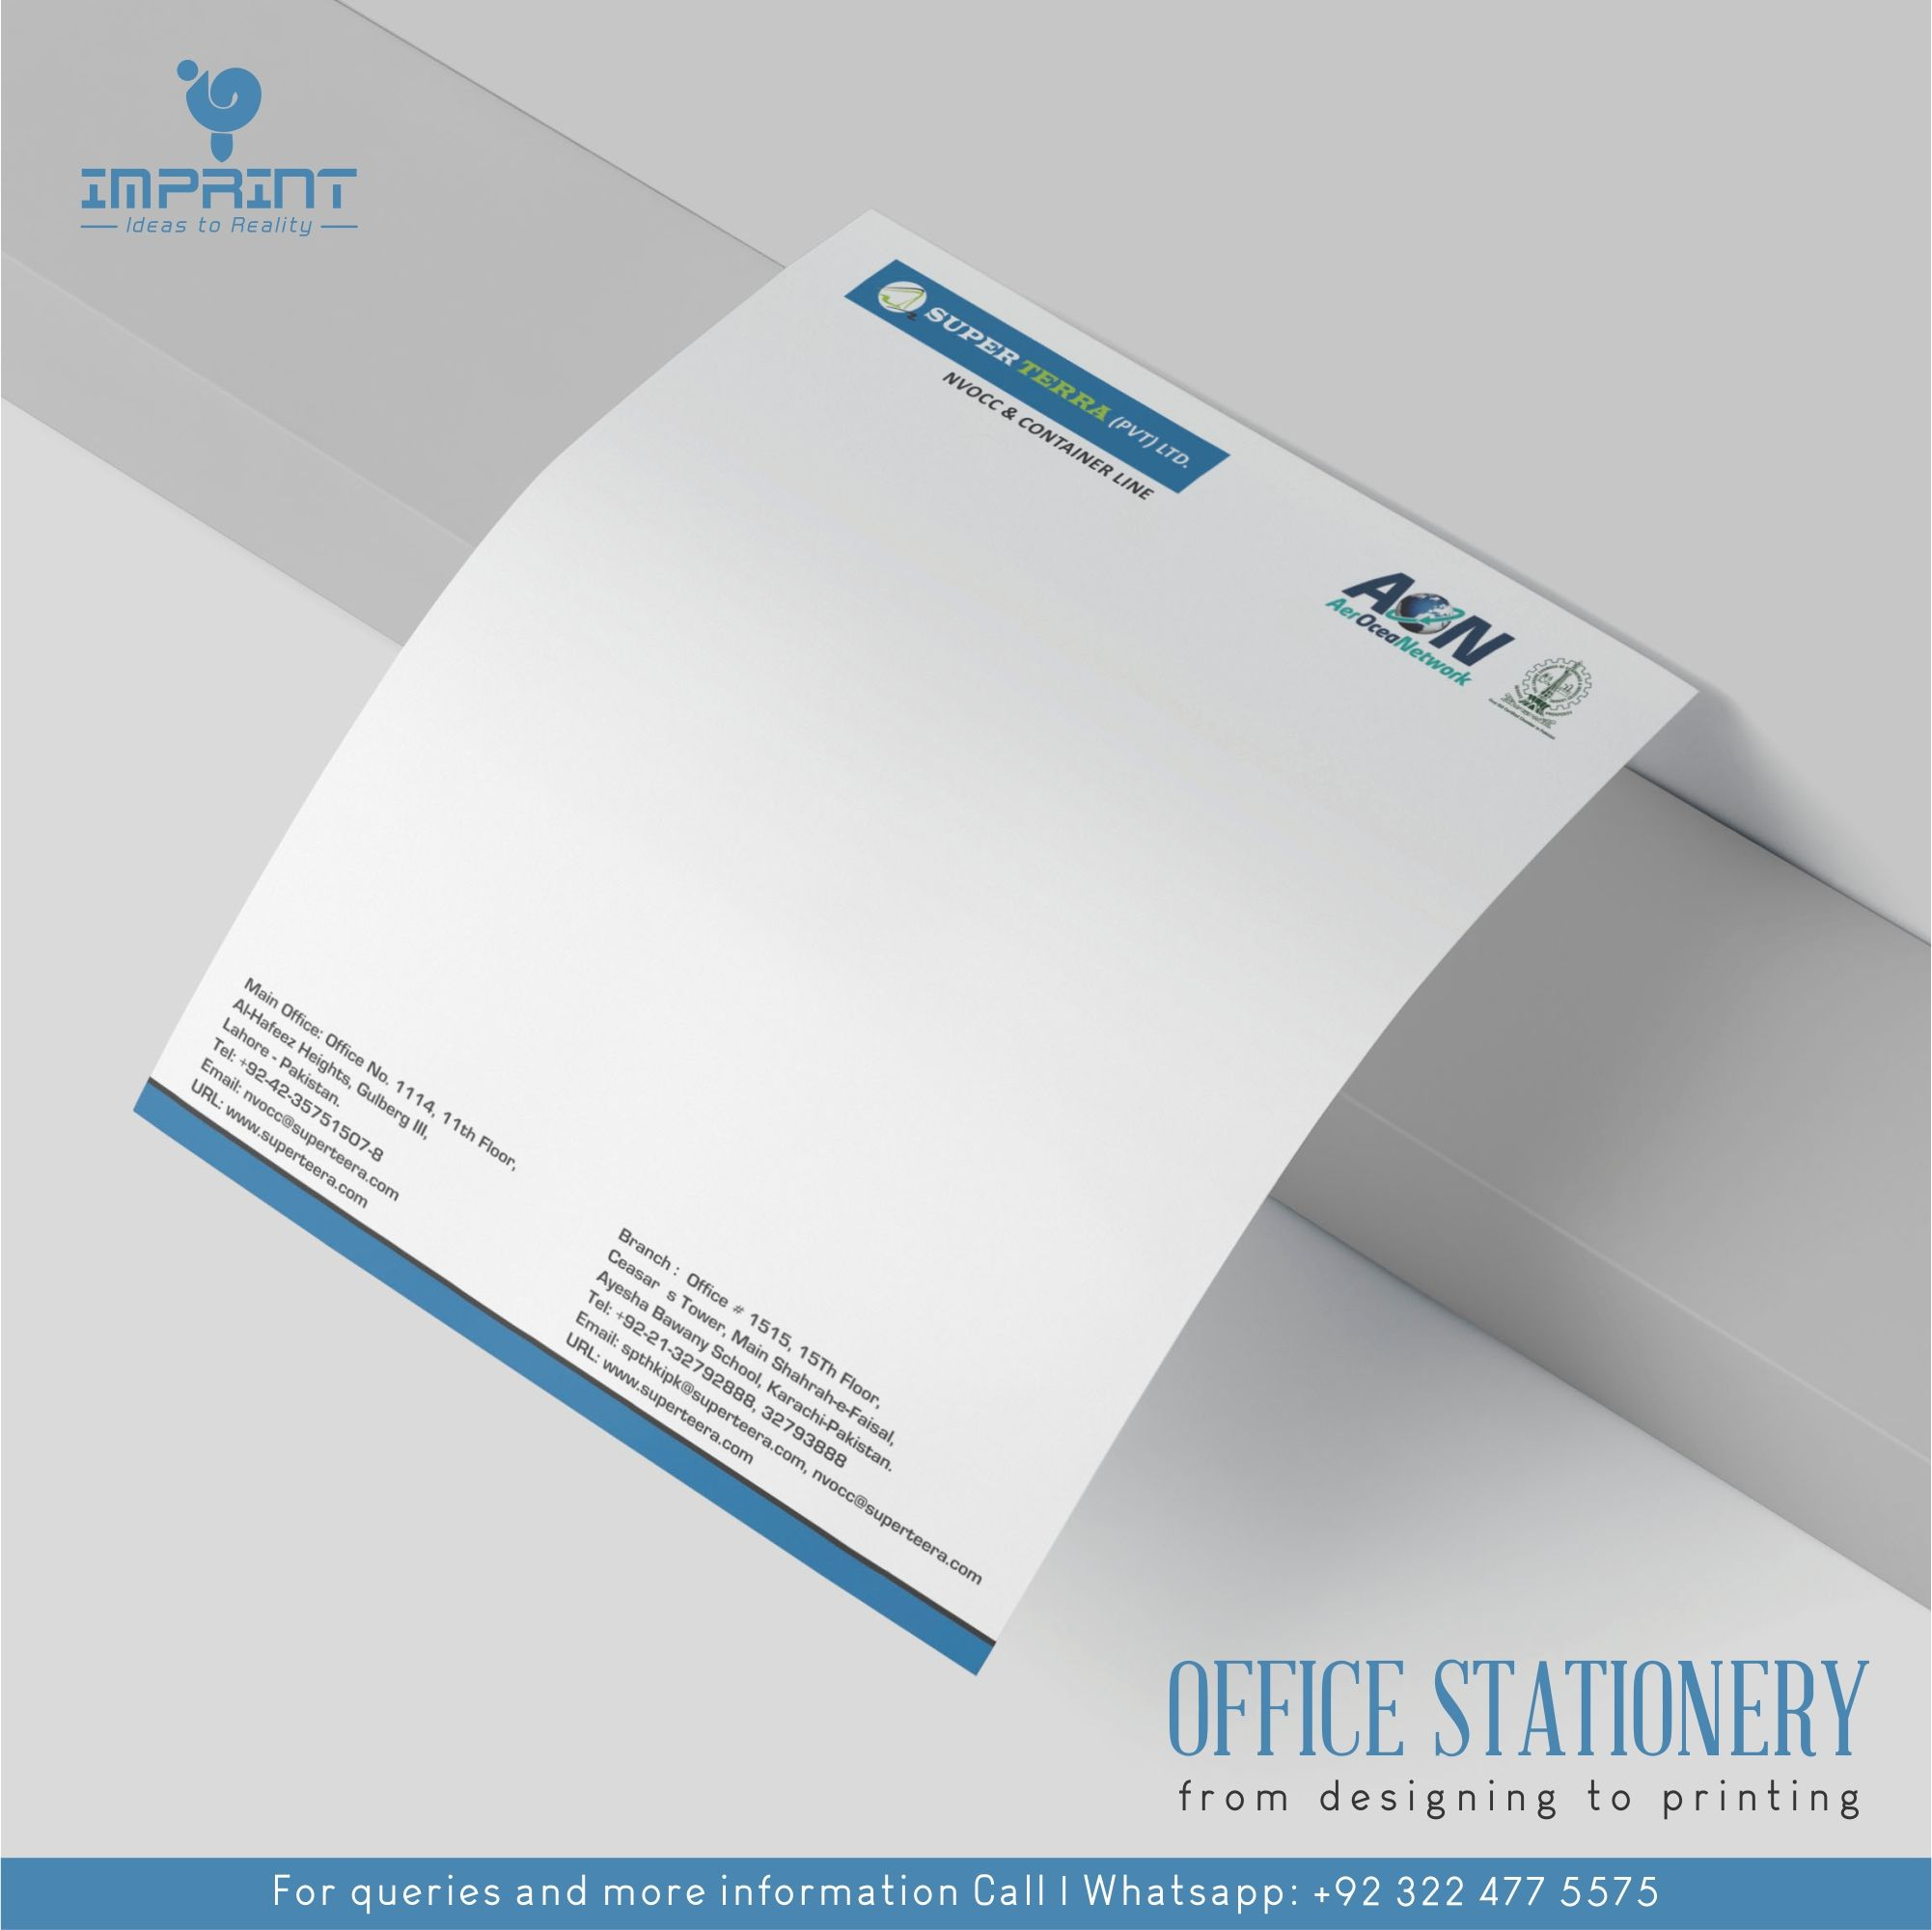 Office Stationery From Design To Print In 2020 Stationery Printing Office Stationery Logo Design Services